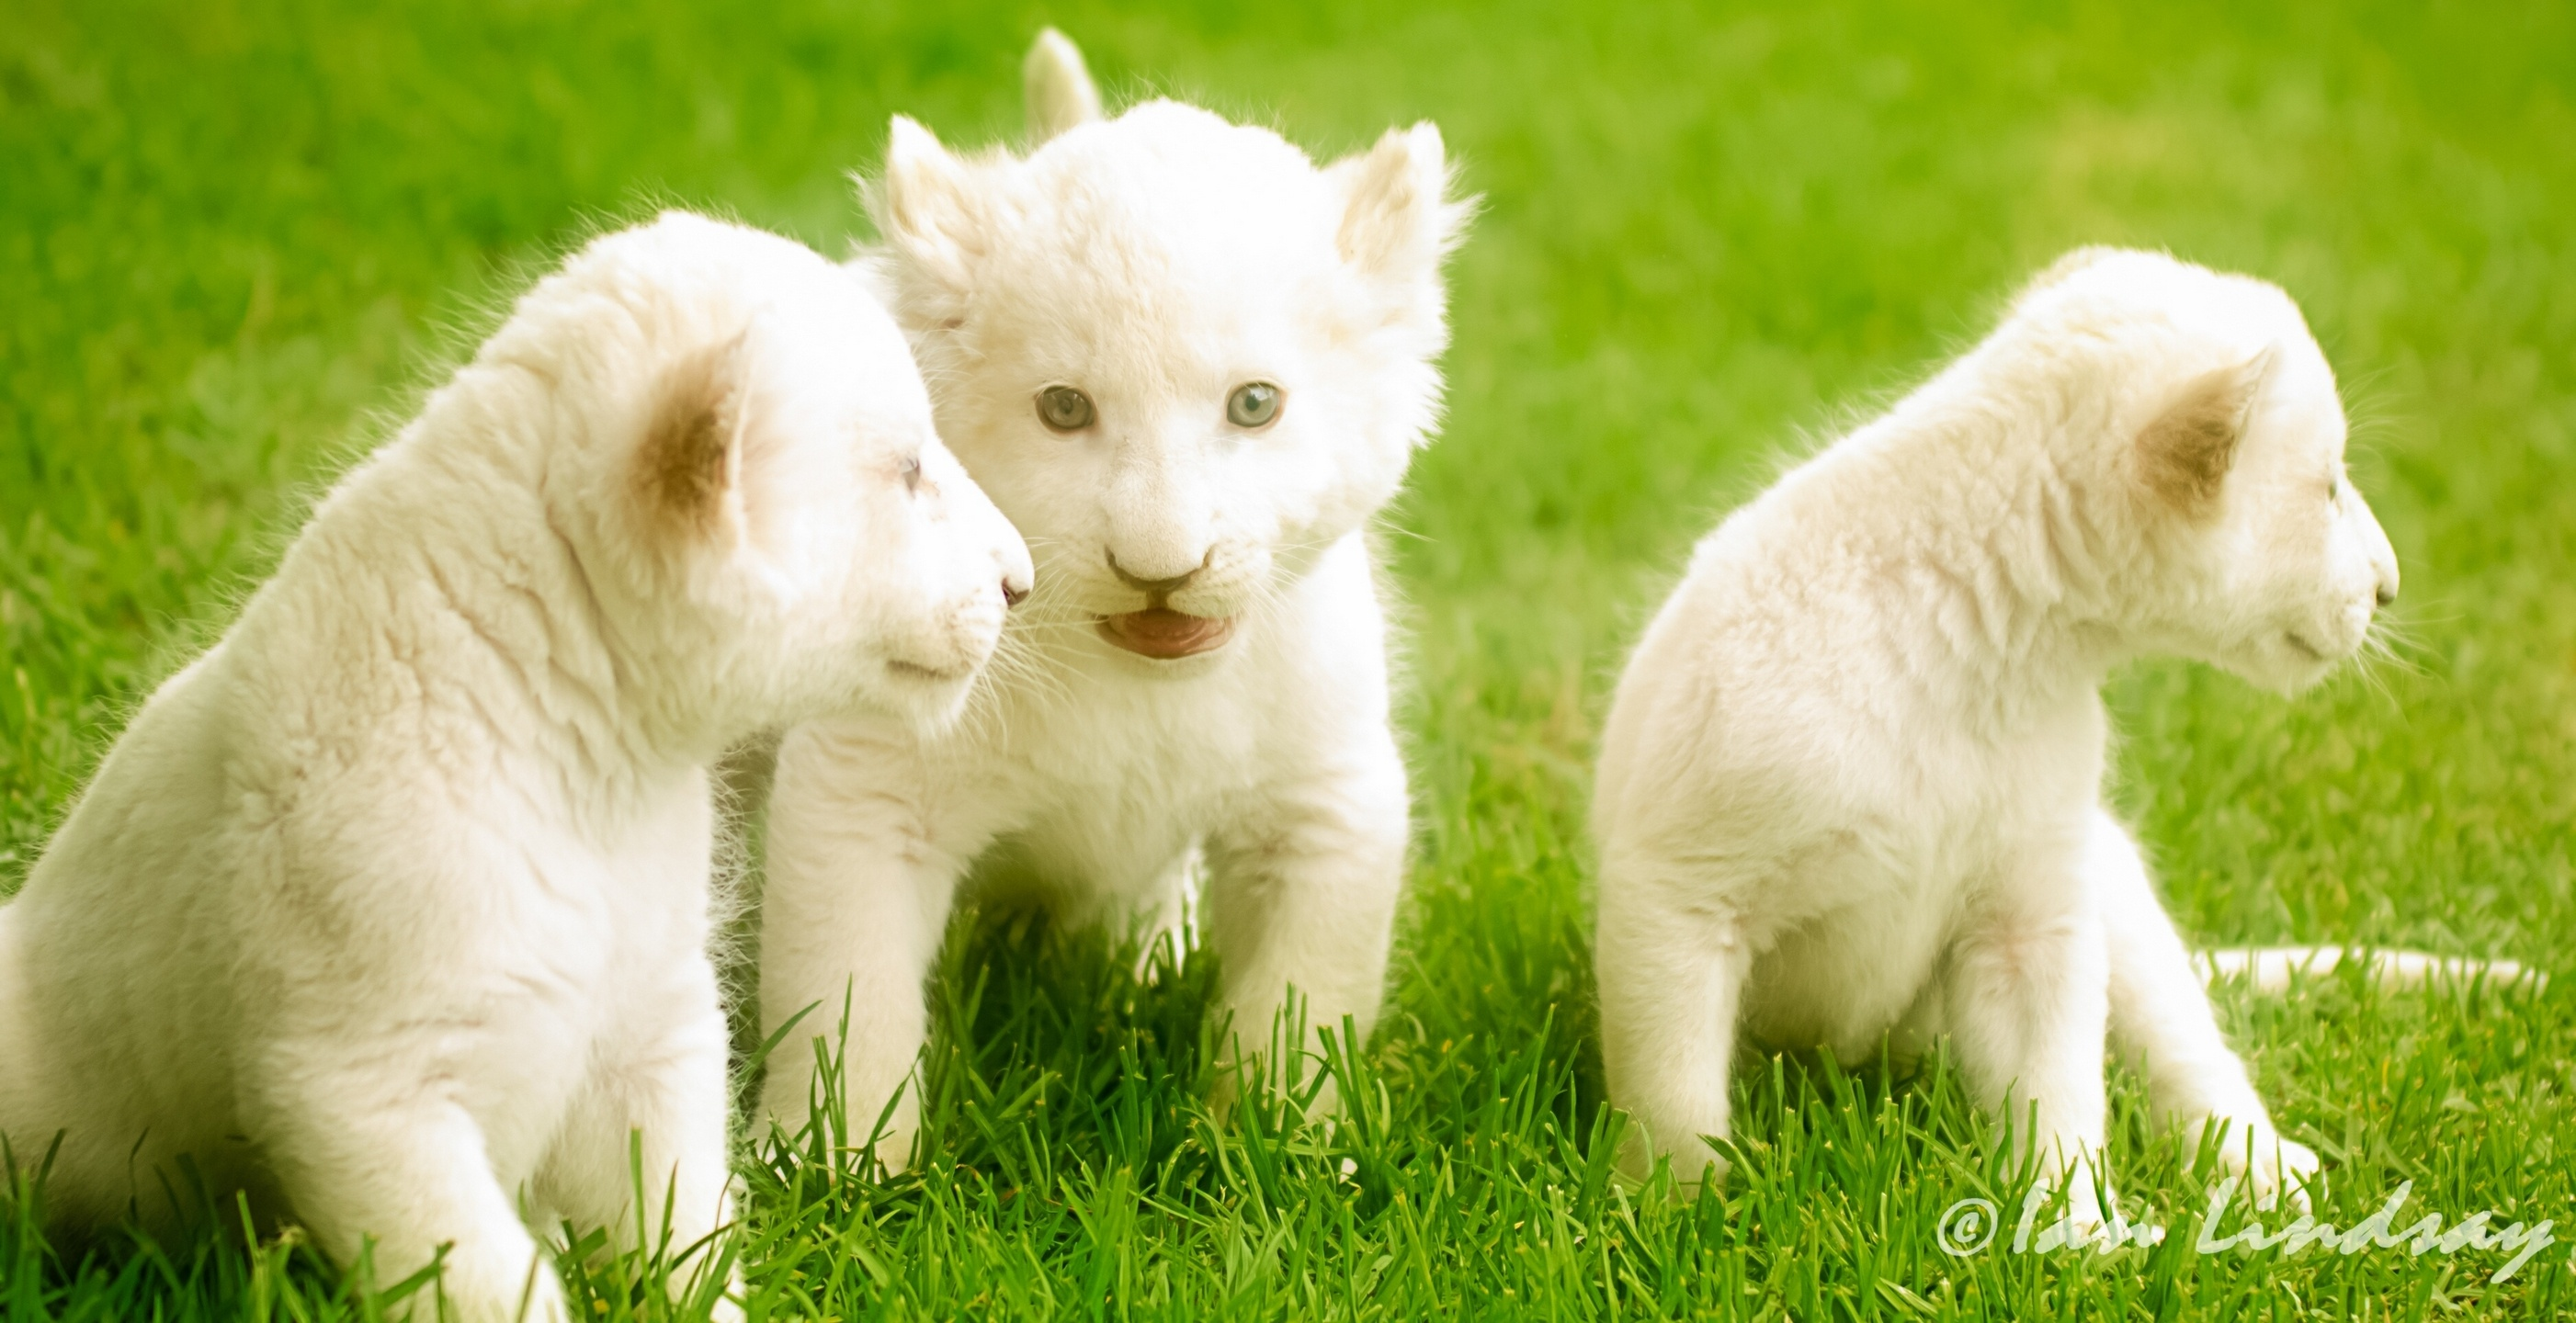 26 White Lion Hd Wallpapers Background Images Wallpaper Abyss Images, Photos, Reviews